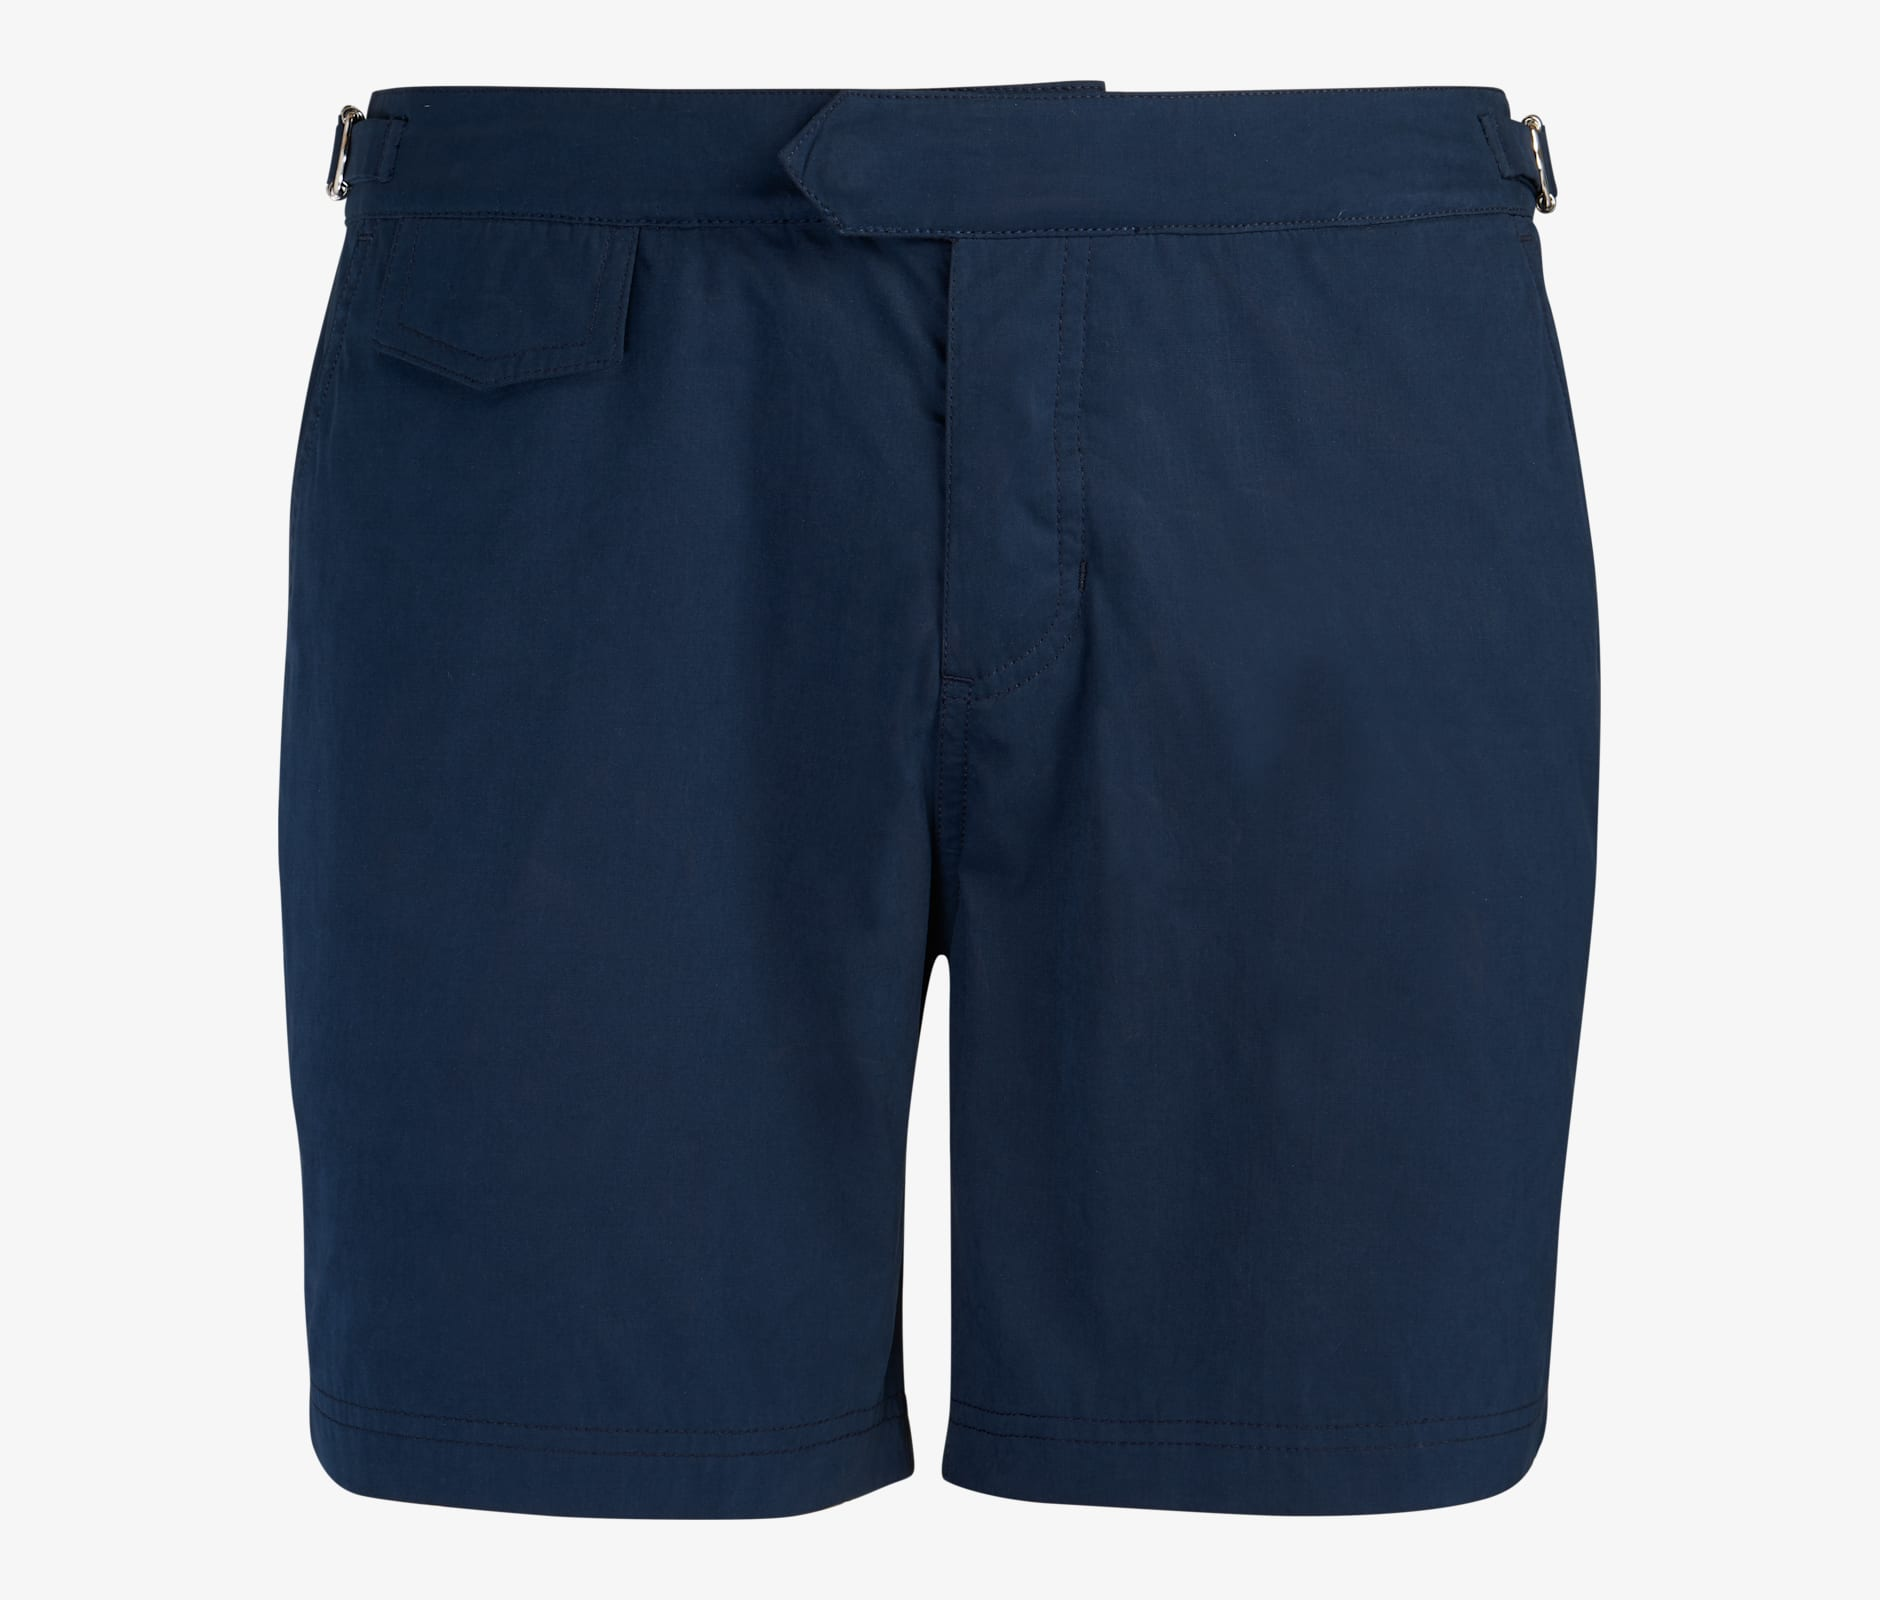 Navy_Swim_Shorts_SWIM029